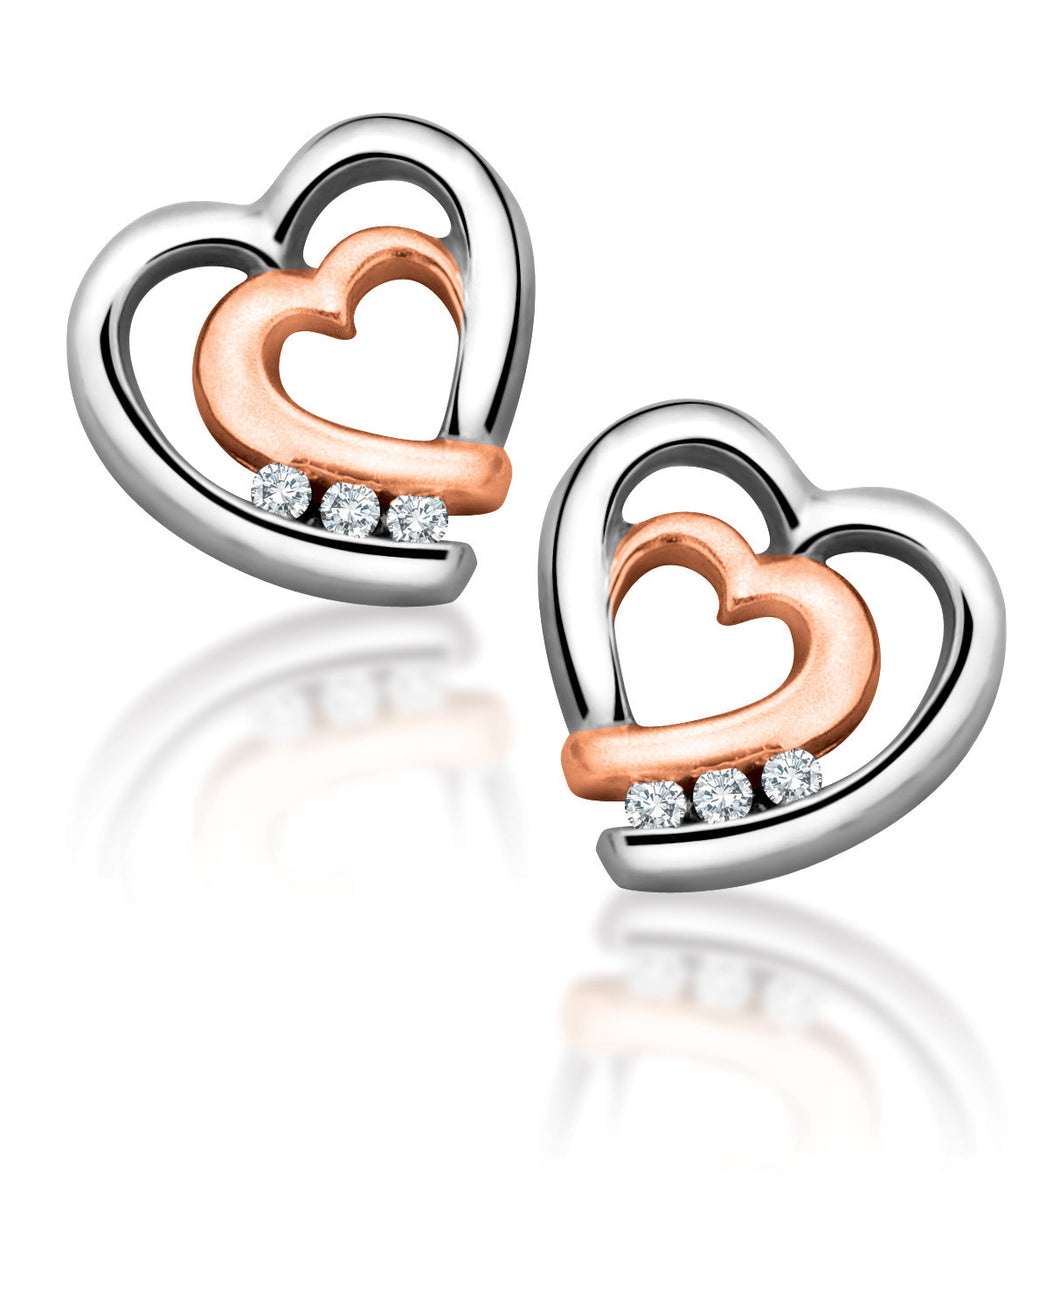 10Kt White Gold Heart Shaped with Rose Gold Accent Diamond Earrings